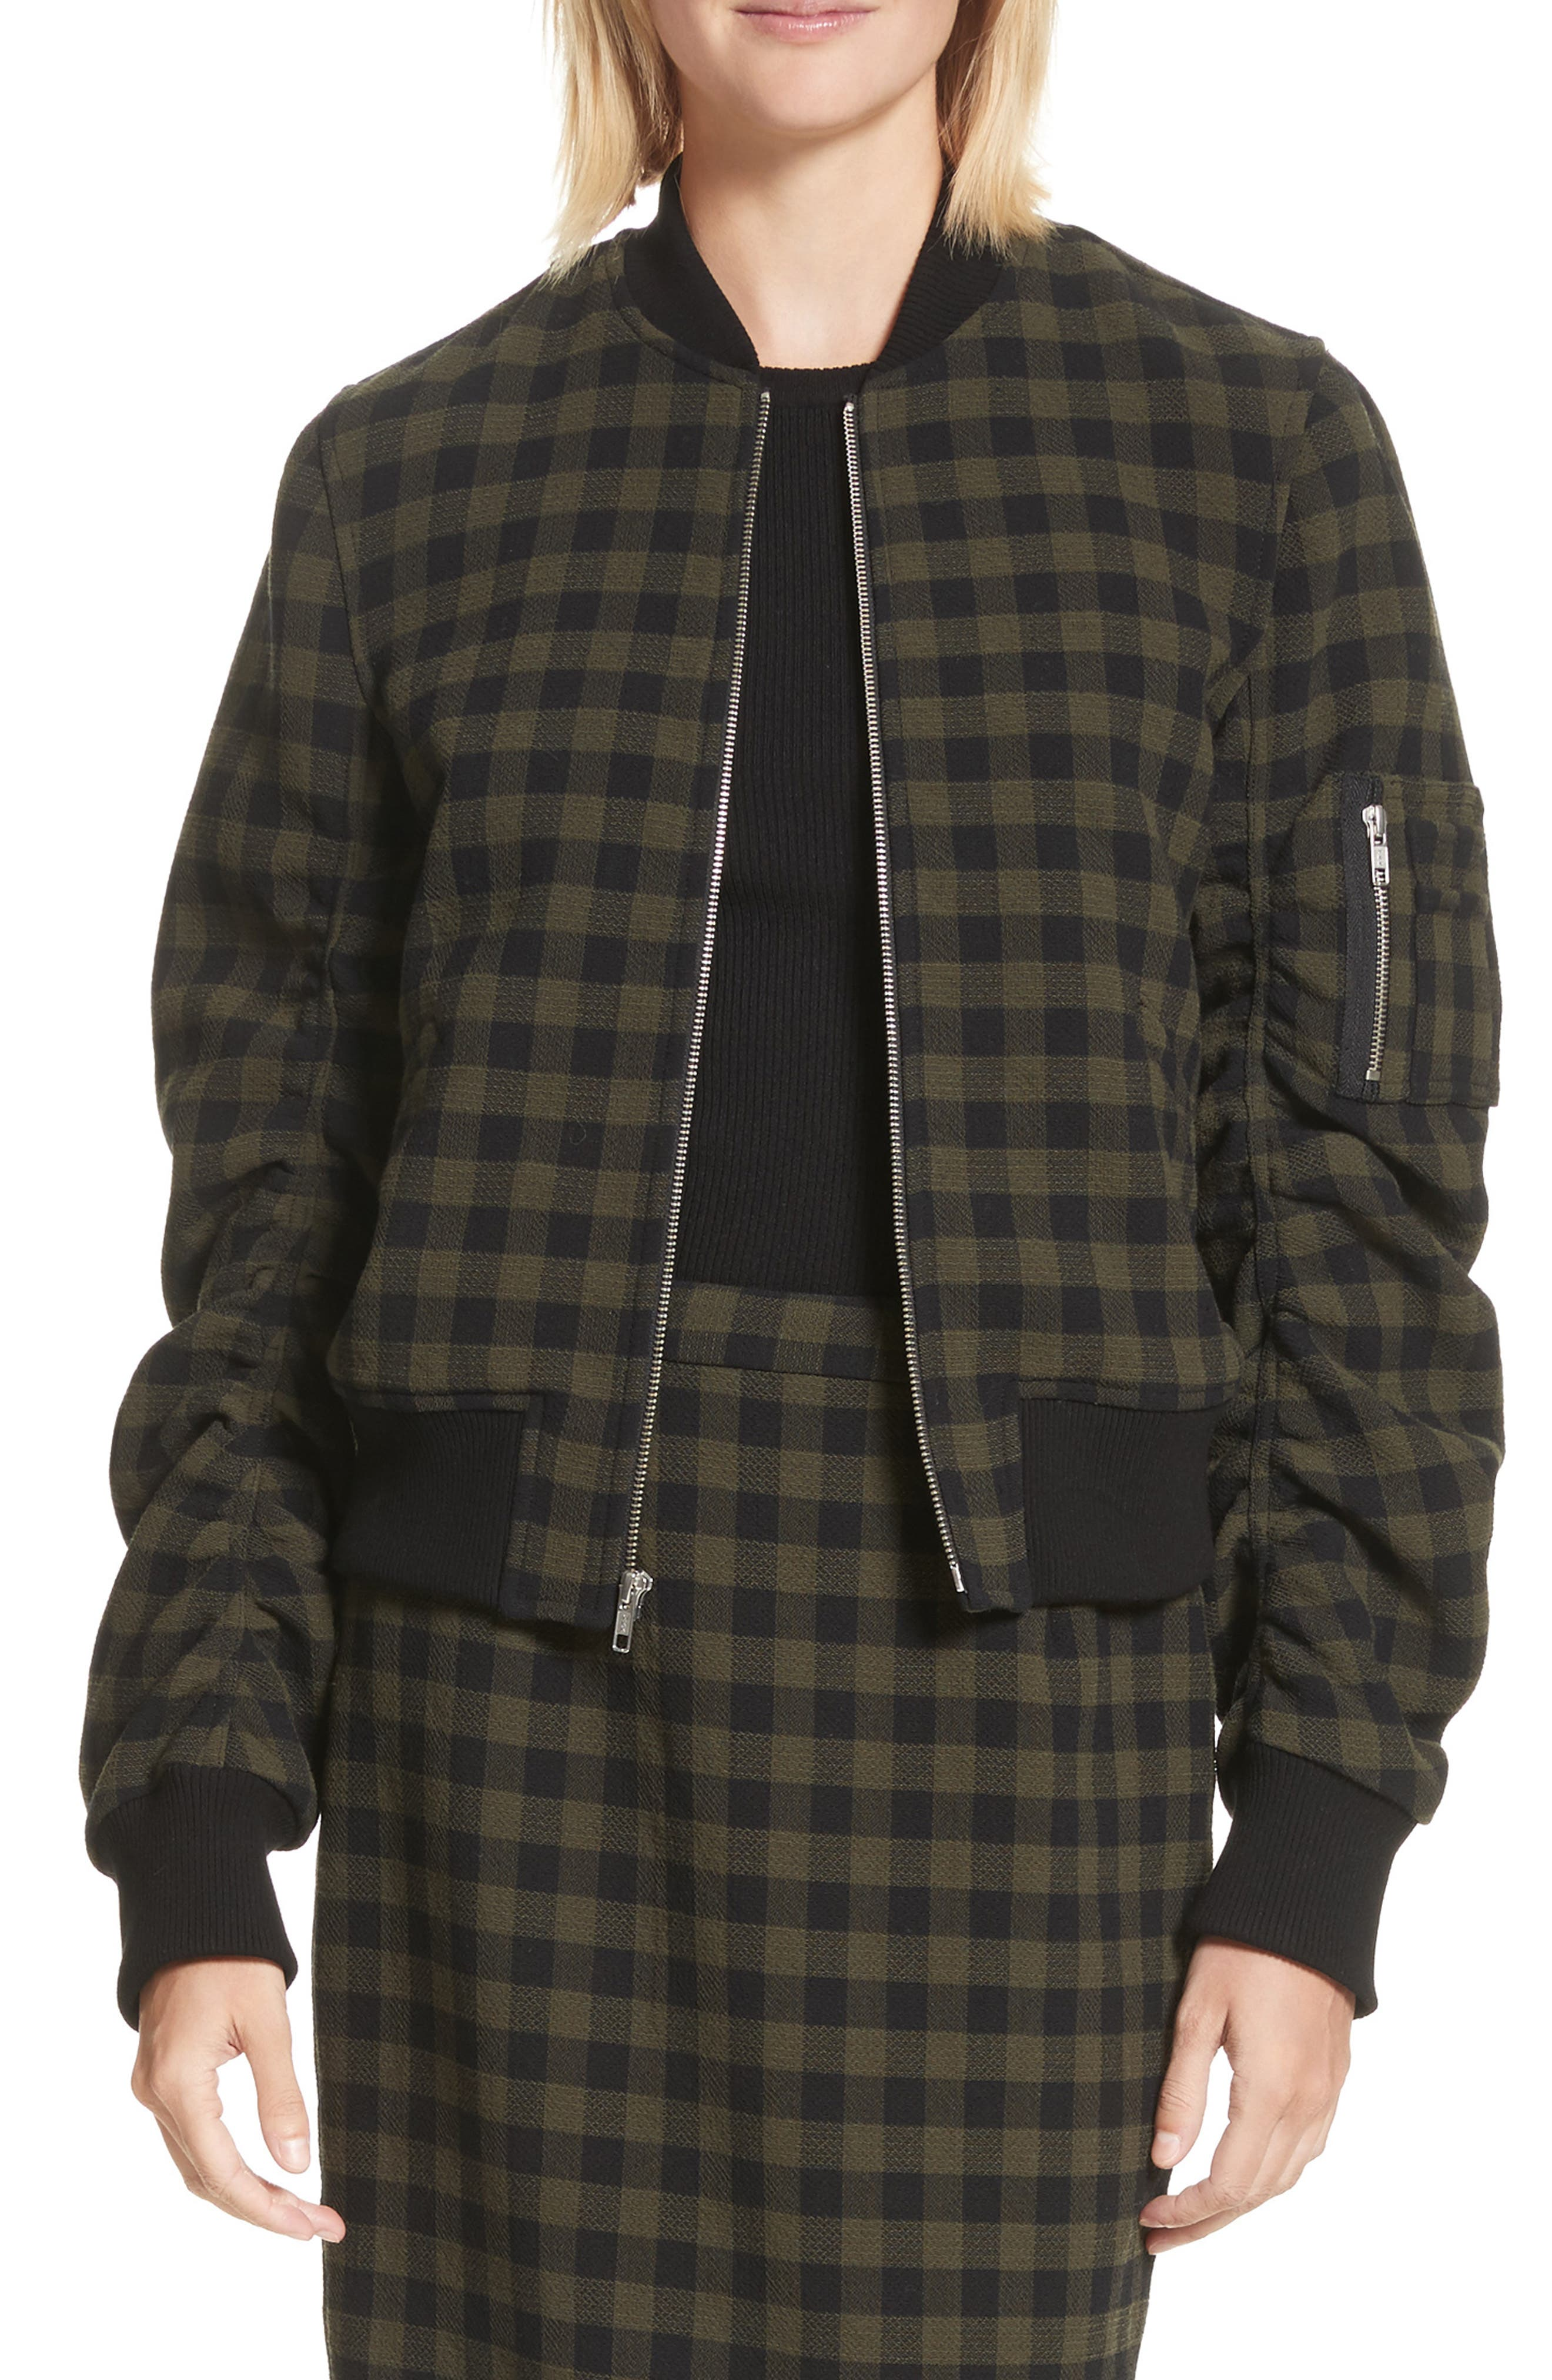 A..L.C. Andrew Wool Bomber Jacket,                             Main thumbnail 1, color,                             340